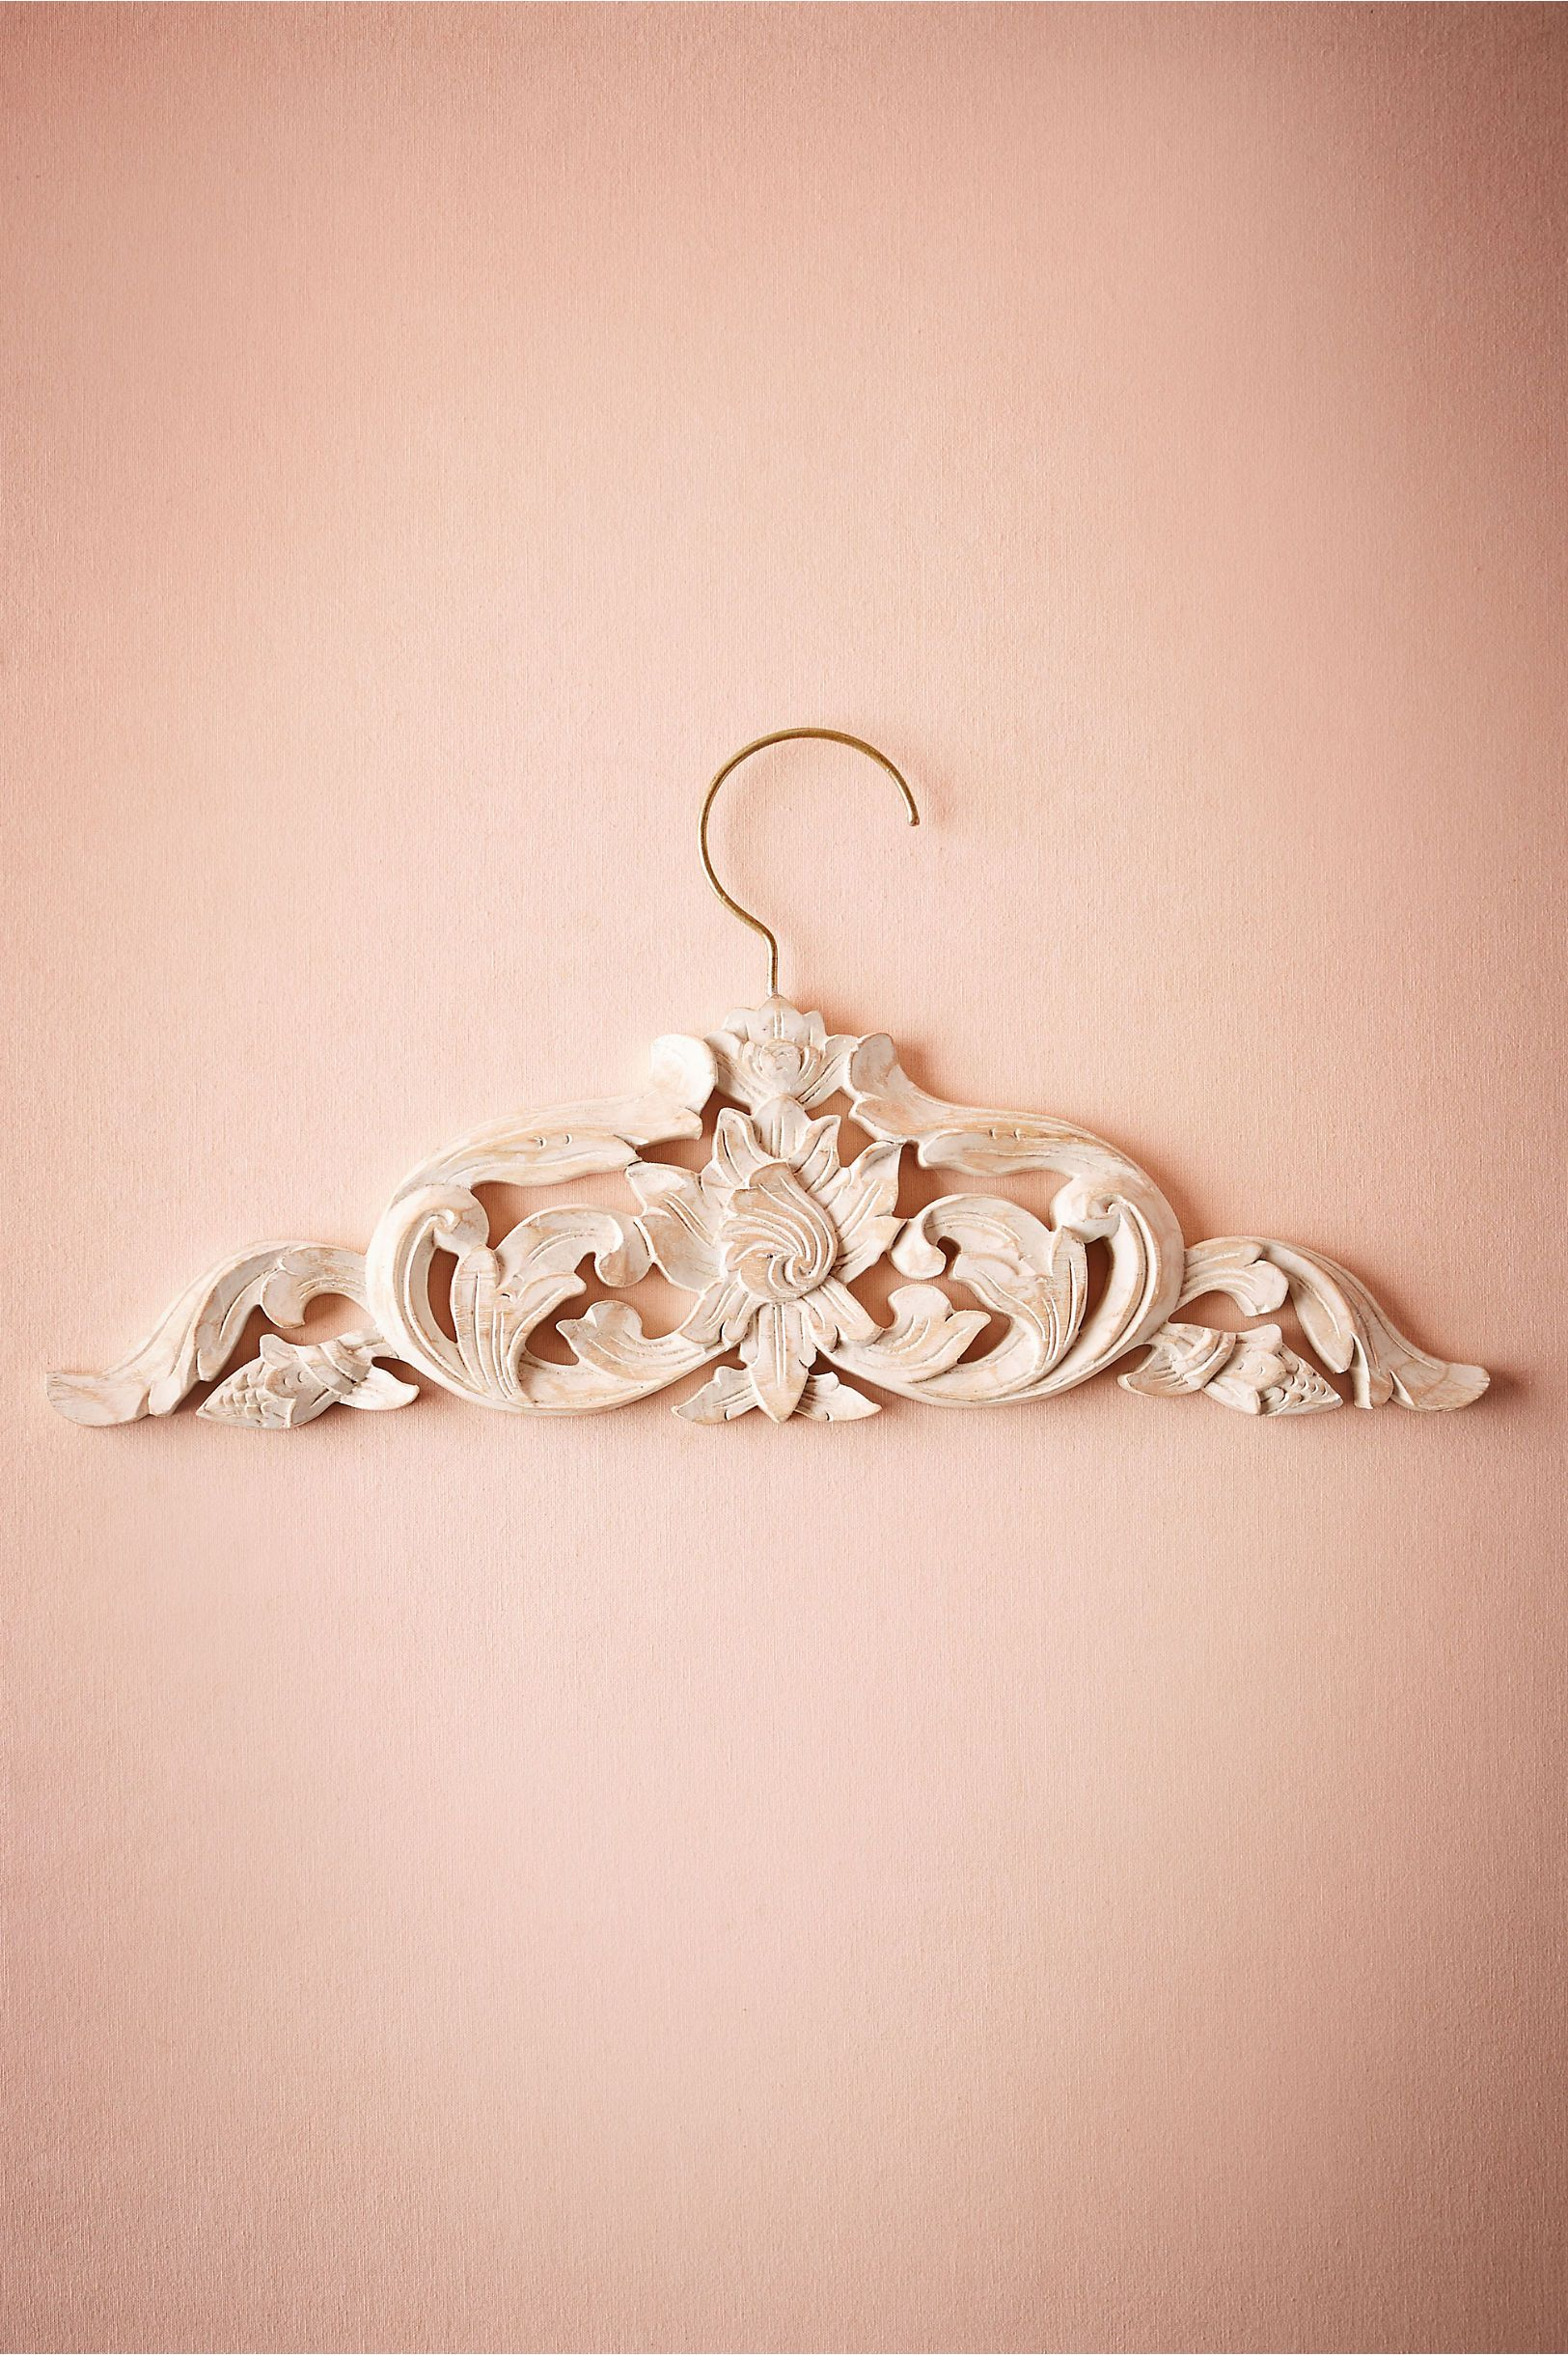 Widescreen diy wedding hanger of laptop high quality closet treatsu artistic bhldn balinese carved wood in